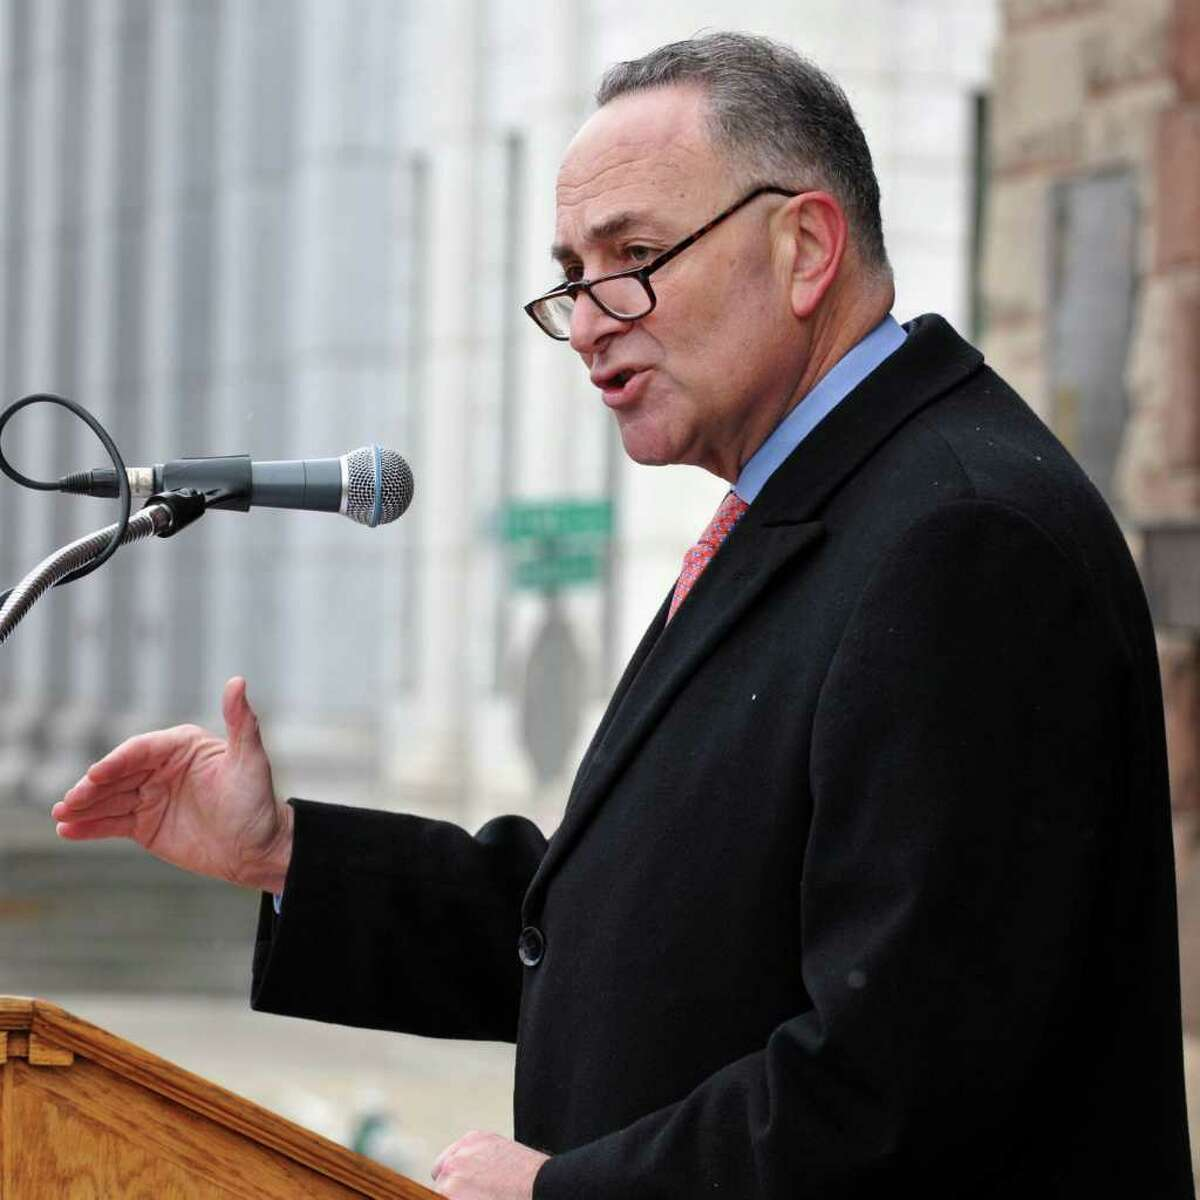 U.S. Sen. Charles Schumer calls on the Department of Homeland Security to provide the Capital Region with more counter-terrorism funding during a news conference on Albany City Hall steps Tuesday January 11, 2011. (John Carl D'Annibale / Times Union)